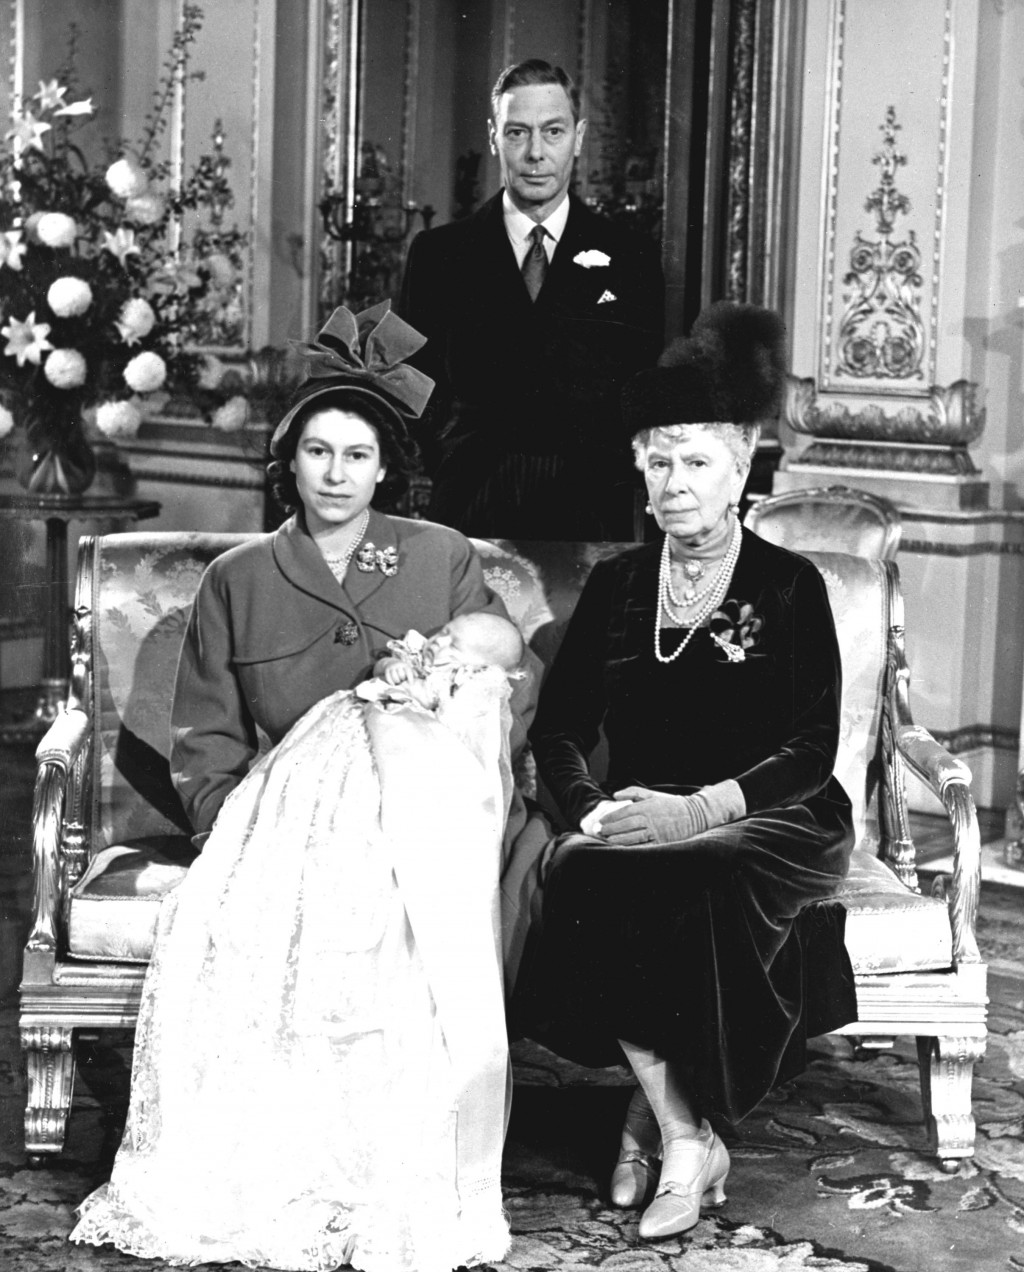 FILE - In this Dec. 15, 1948 file photo, Britain's Queen Elizabeth pictured with her first son, Prince Charles, her grandmother Queen Mary and father